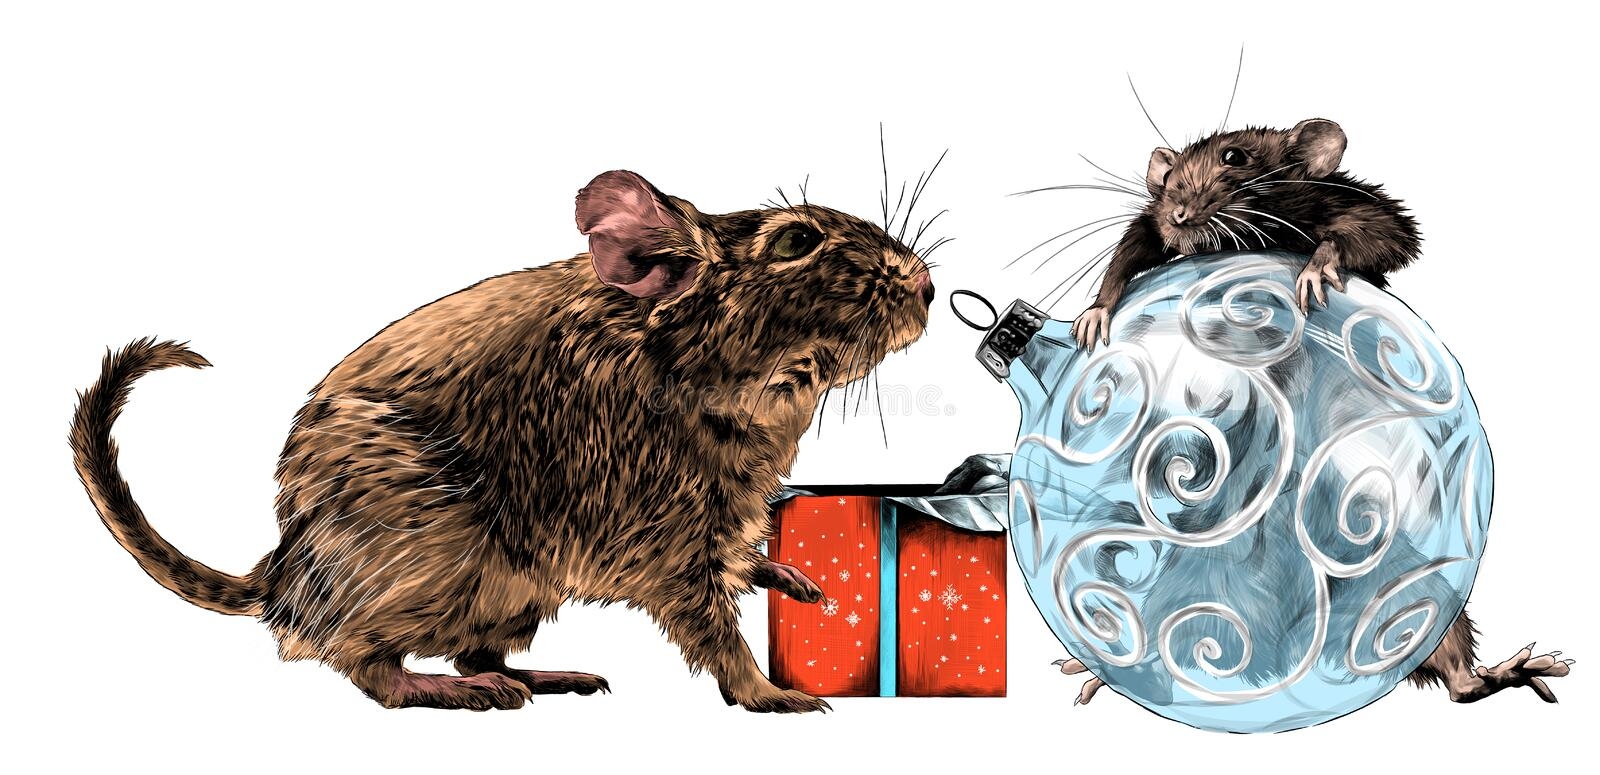 A mouse climbed on a round Christmas tree Christmas toy and a second mouse sits next to it and looks at it next to a gift box royalty free illustration